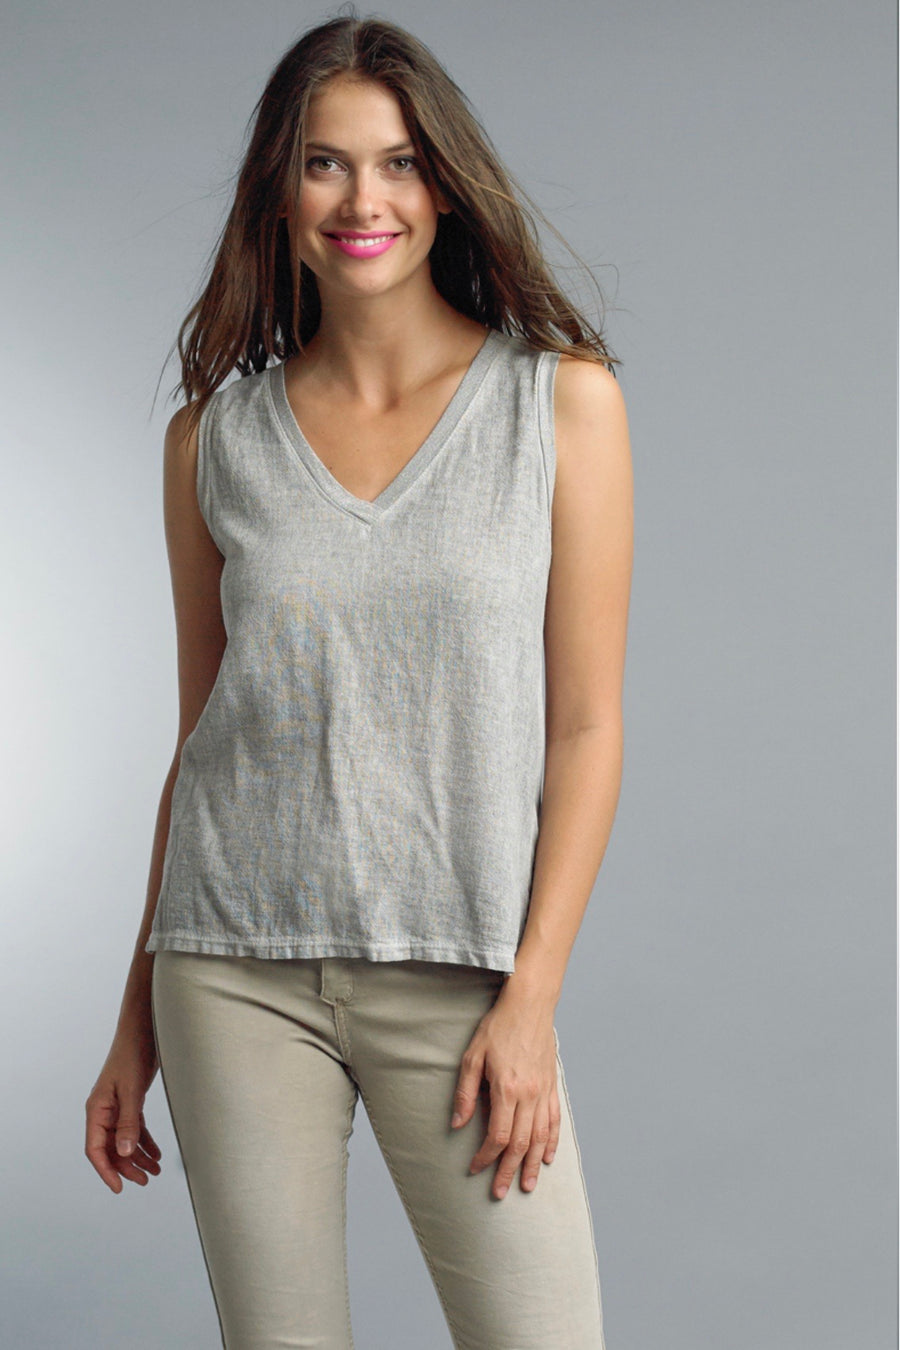 V-Neck Sleeveless Tank Top